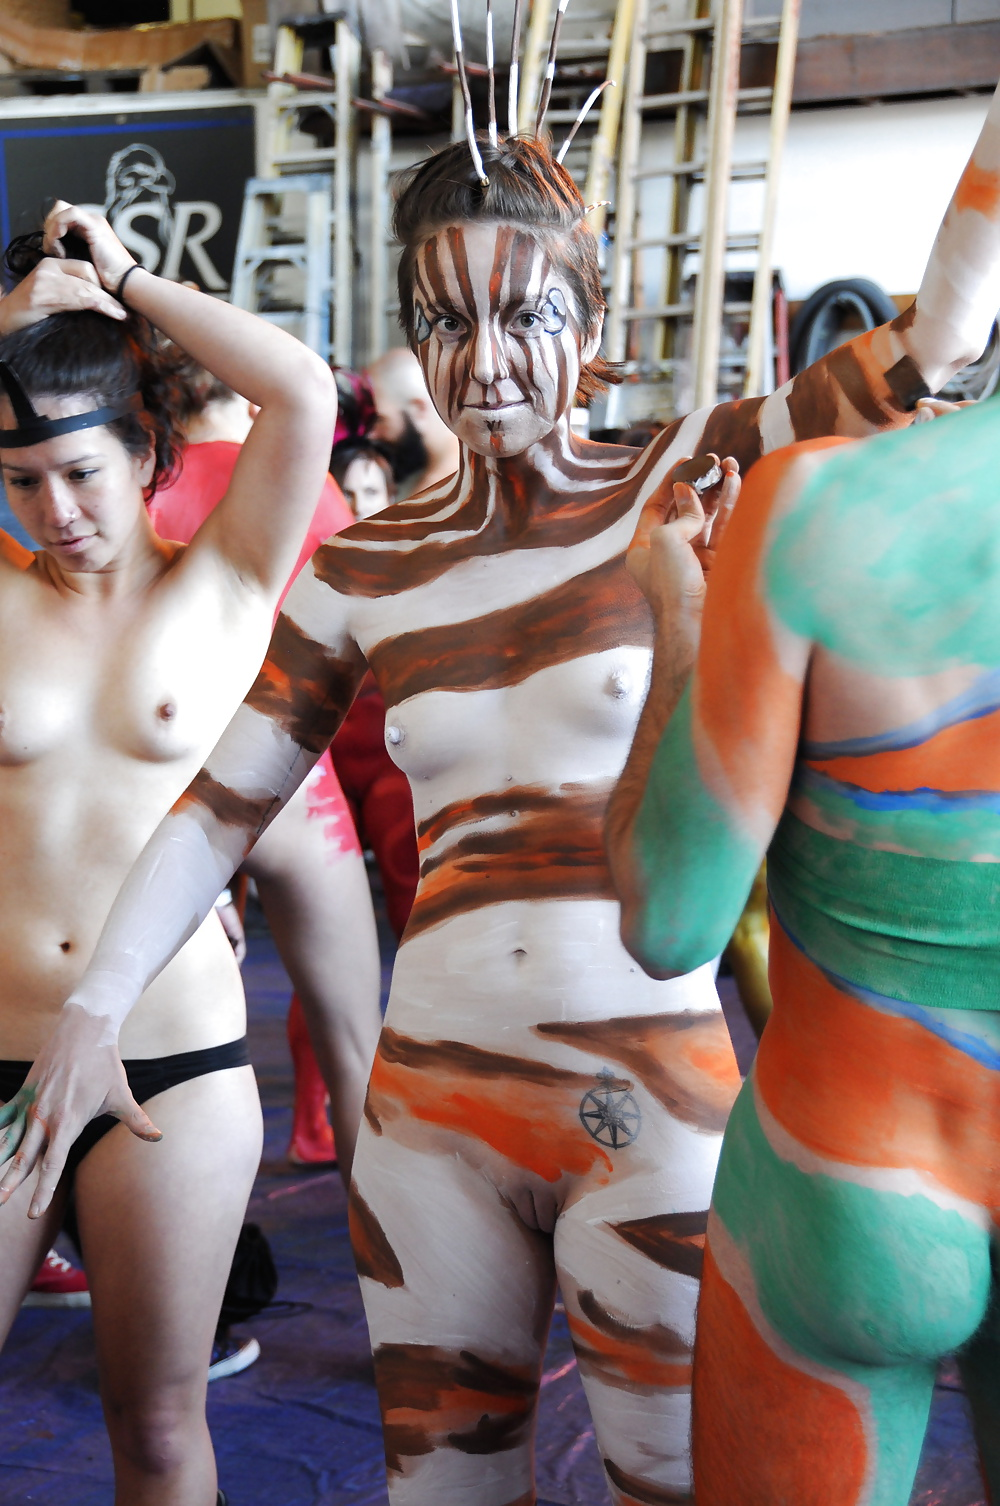 body-painting-parties-porn-movies-greek-and-latin-classics